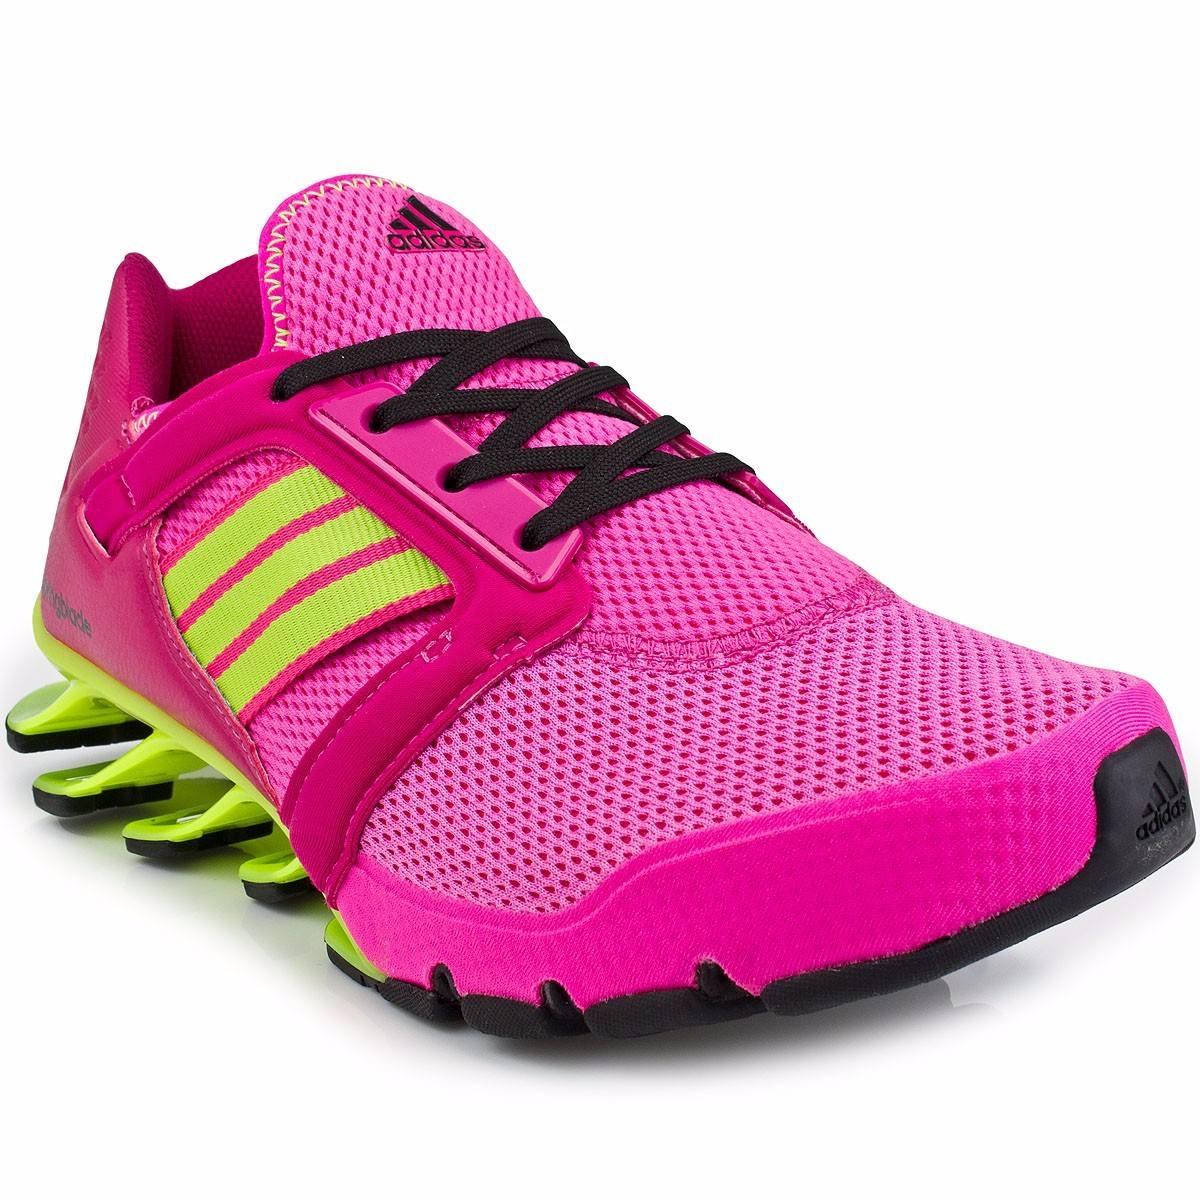 best authentic 60d06 553e7 adidas springblade e-force rosa amarelo - original en. Carregando zoom.